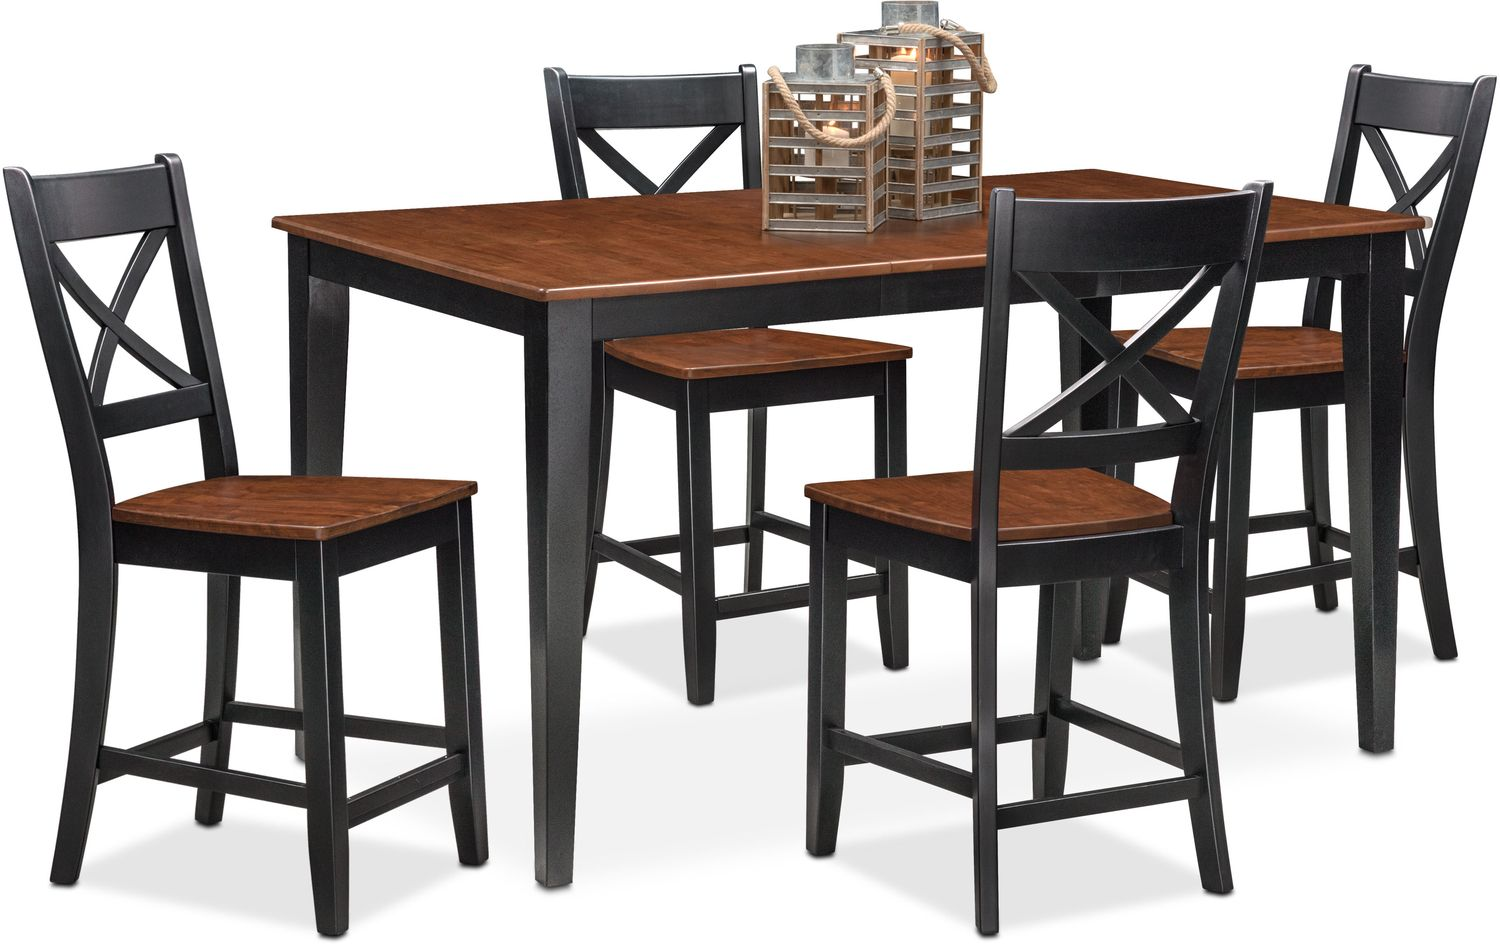 Dining Room Furniture - Nantucket Counter-Height Table and 4 Side Chairs - Black and Cherry